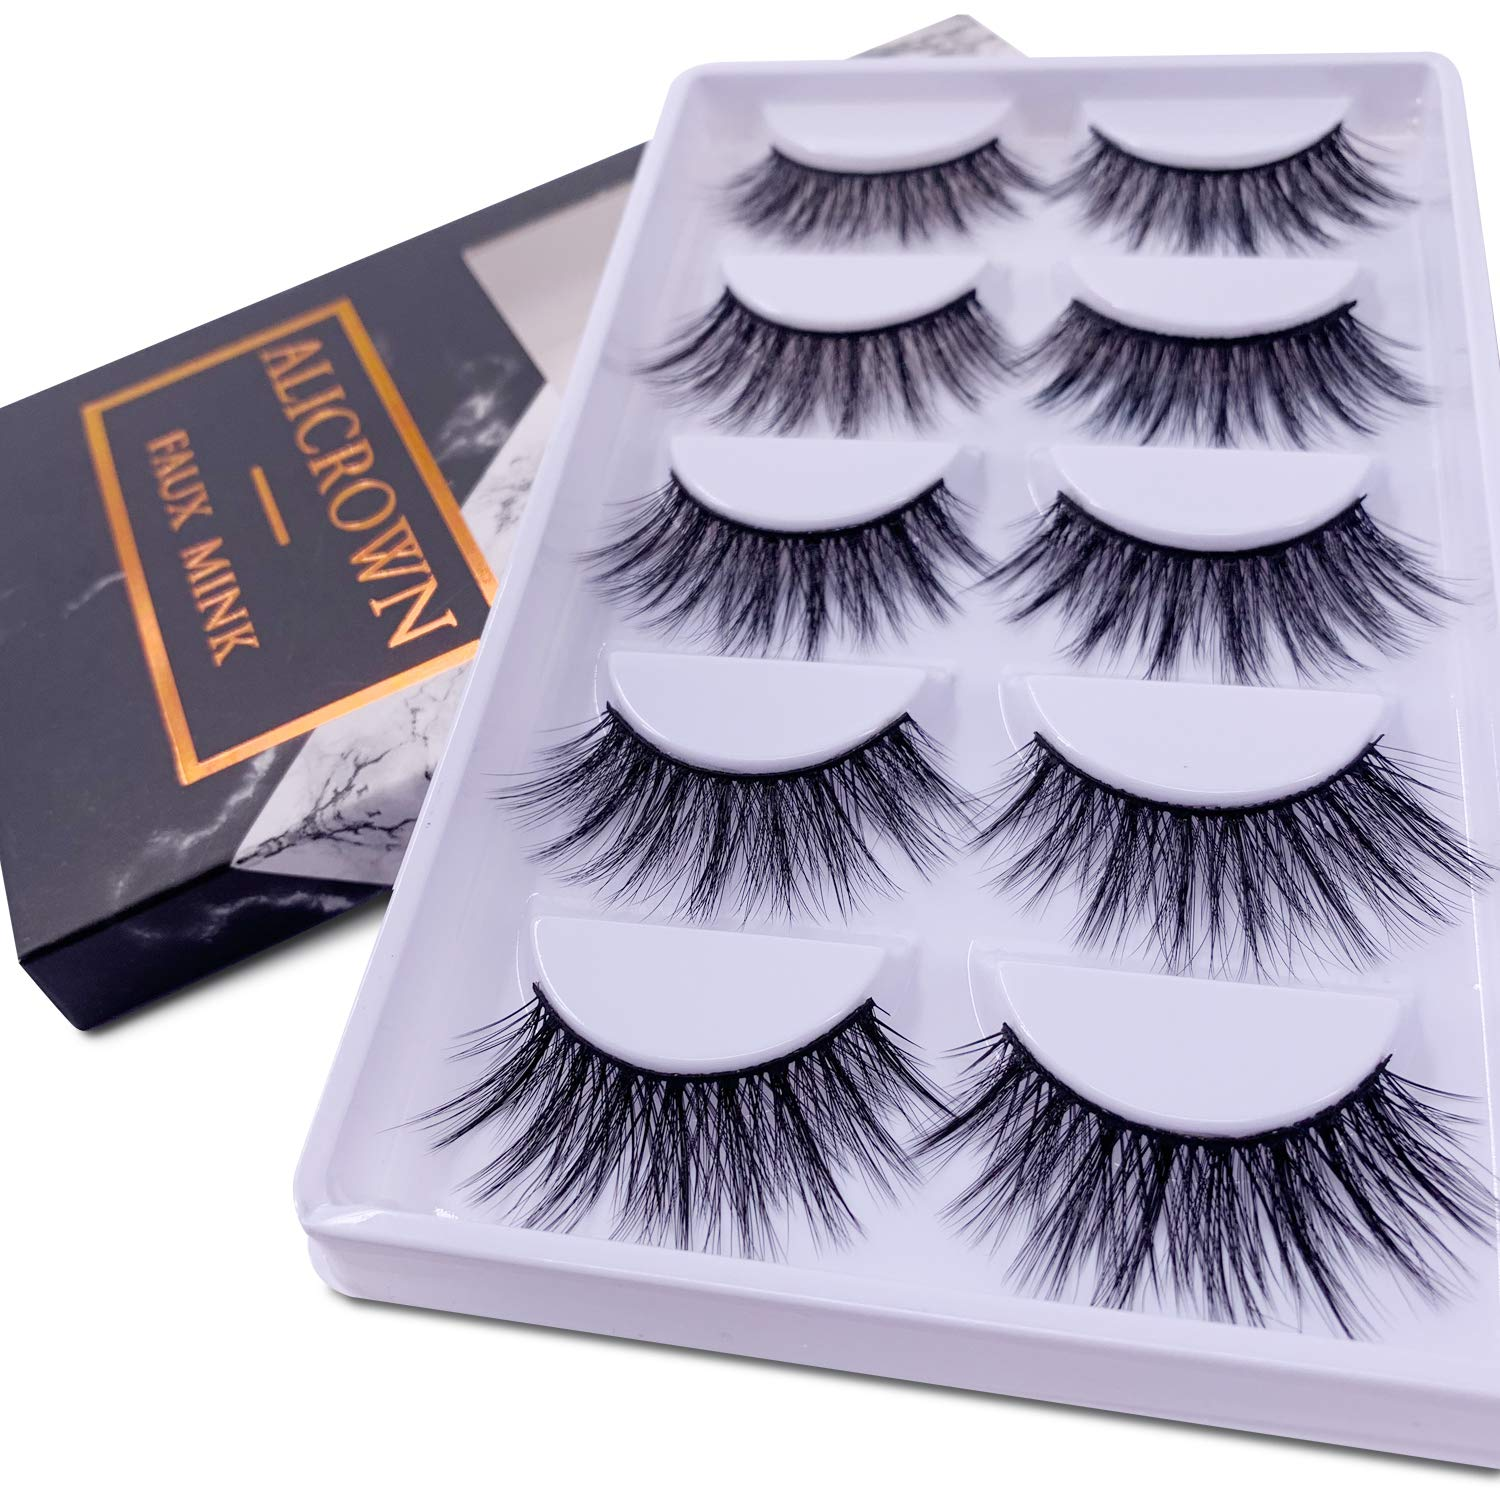 d5958696d97 Amazon.com : ALICROWN 3D Eyelashes Pack False Eyelashes Mink Fur Hand-Made  Dramatic Thick Crisscross Deluxe Nature Fluffy Long Soft Reusable : Beauty